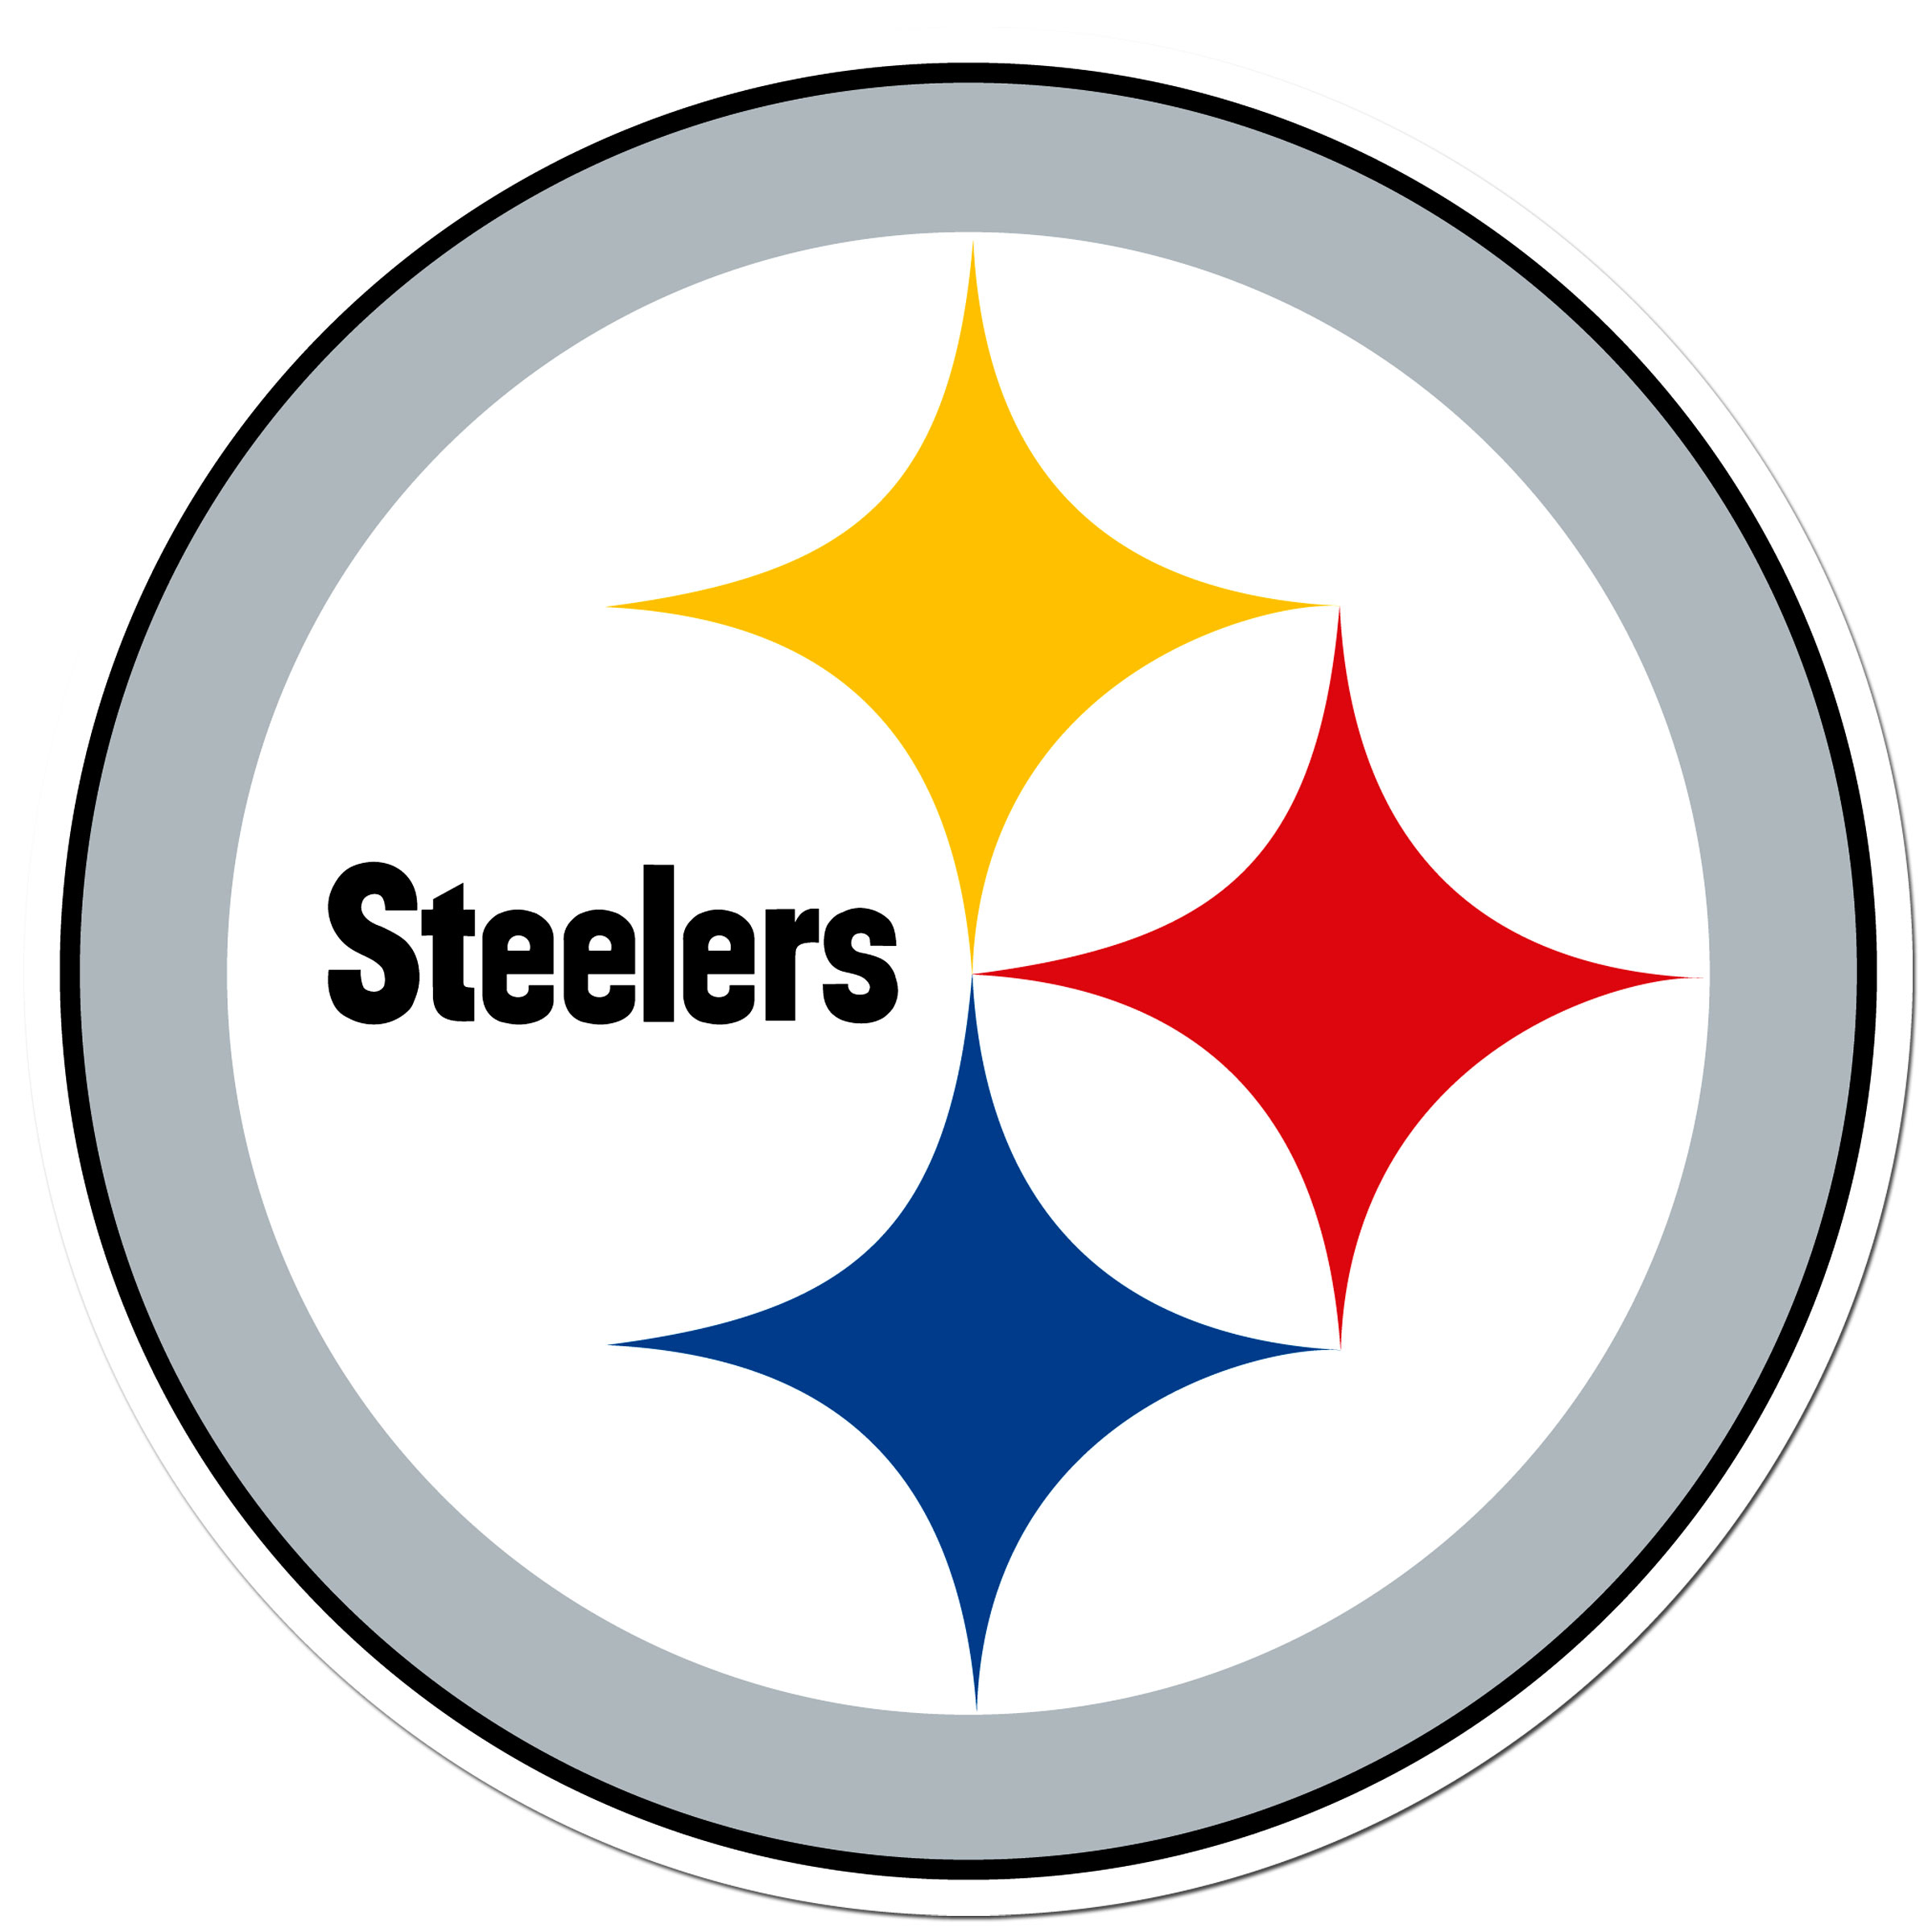 Pittsburgh Steelers 8 inch Auto Decal - This bold, 8 inch Pittsburgh Steelers is a great way to show off your team pride! The low tack vinyl decal is easily positioned and adjusted to make sure you get that logo in just the right spot on your vehicle. Designed to be used on the outside of the window.